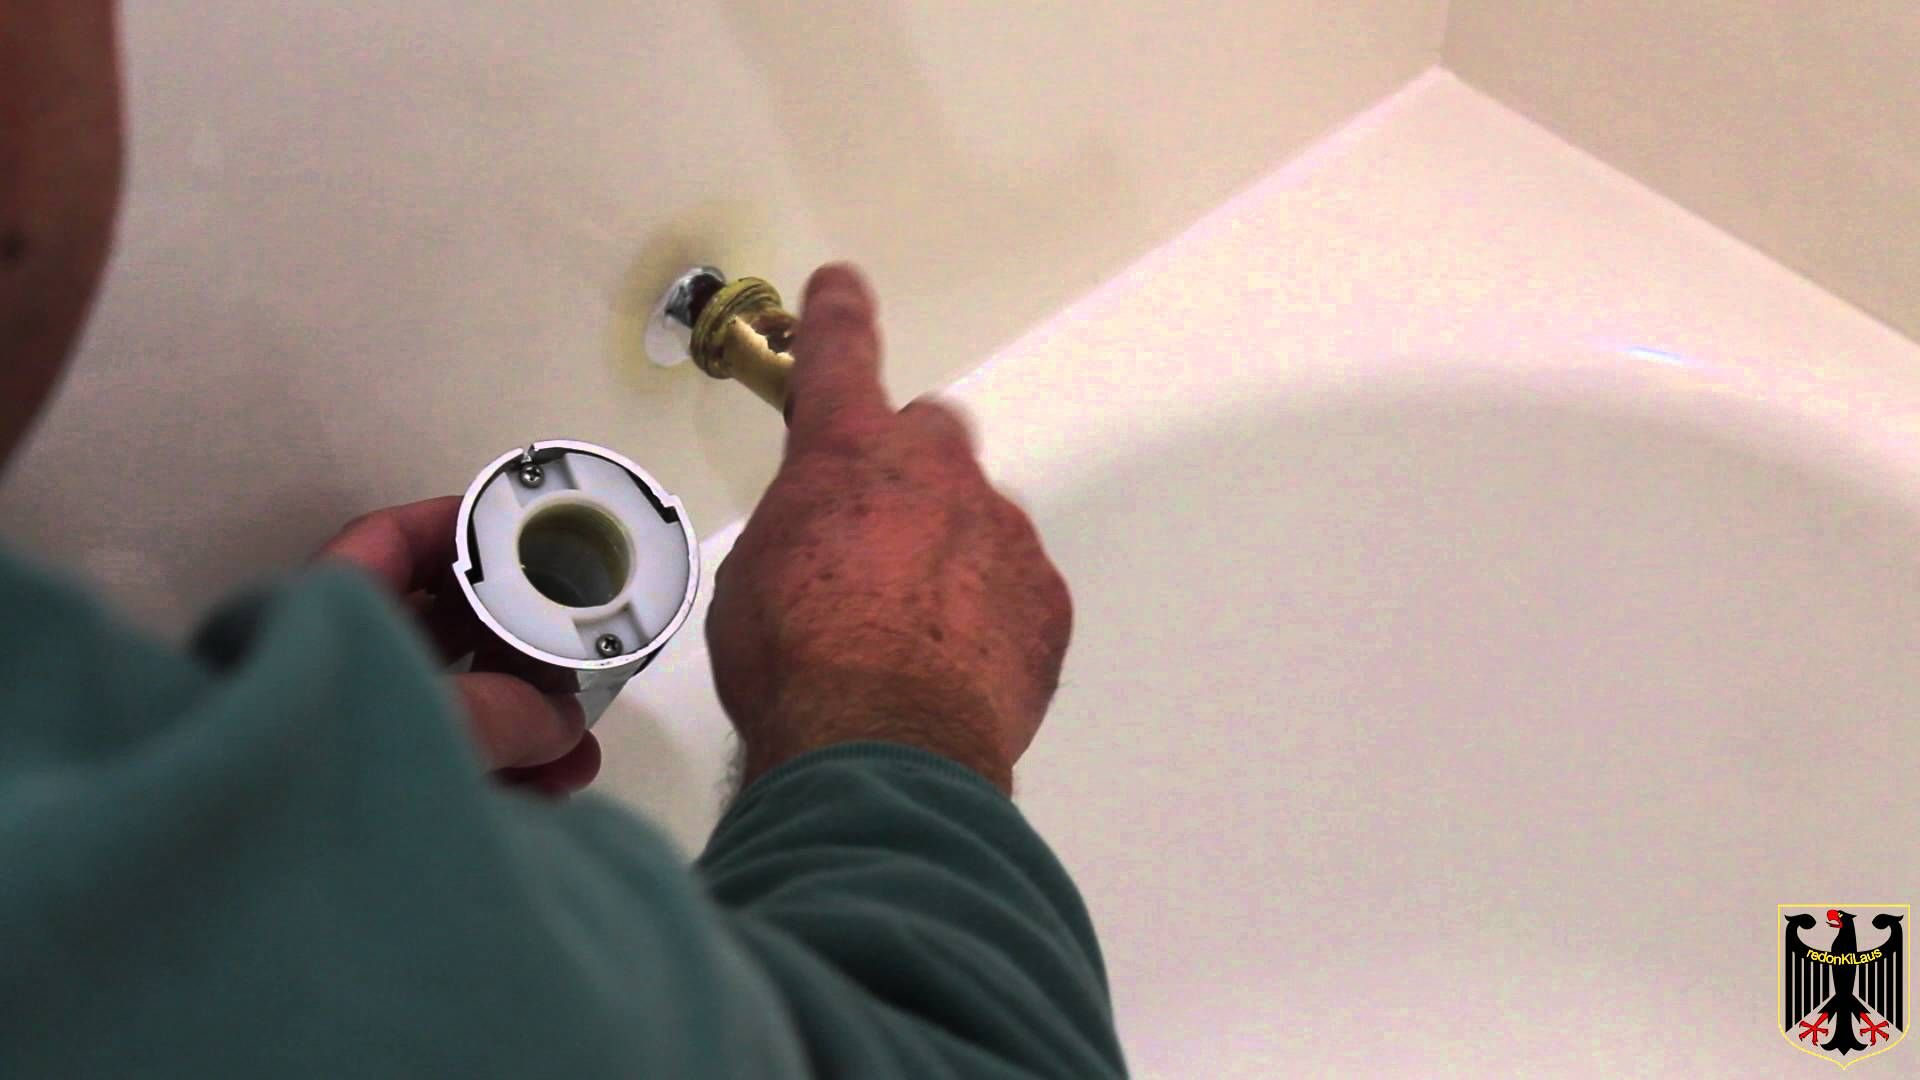 How To Fix A Leaking Delta Bathtub Faucet Faucet Faucet Repair